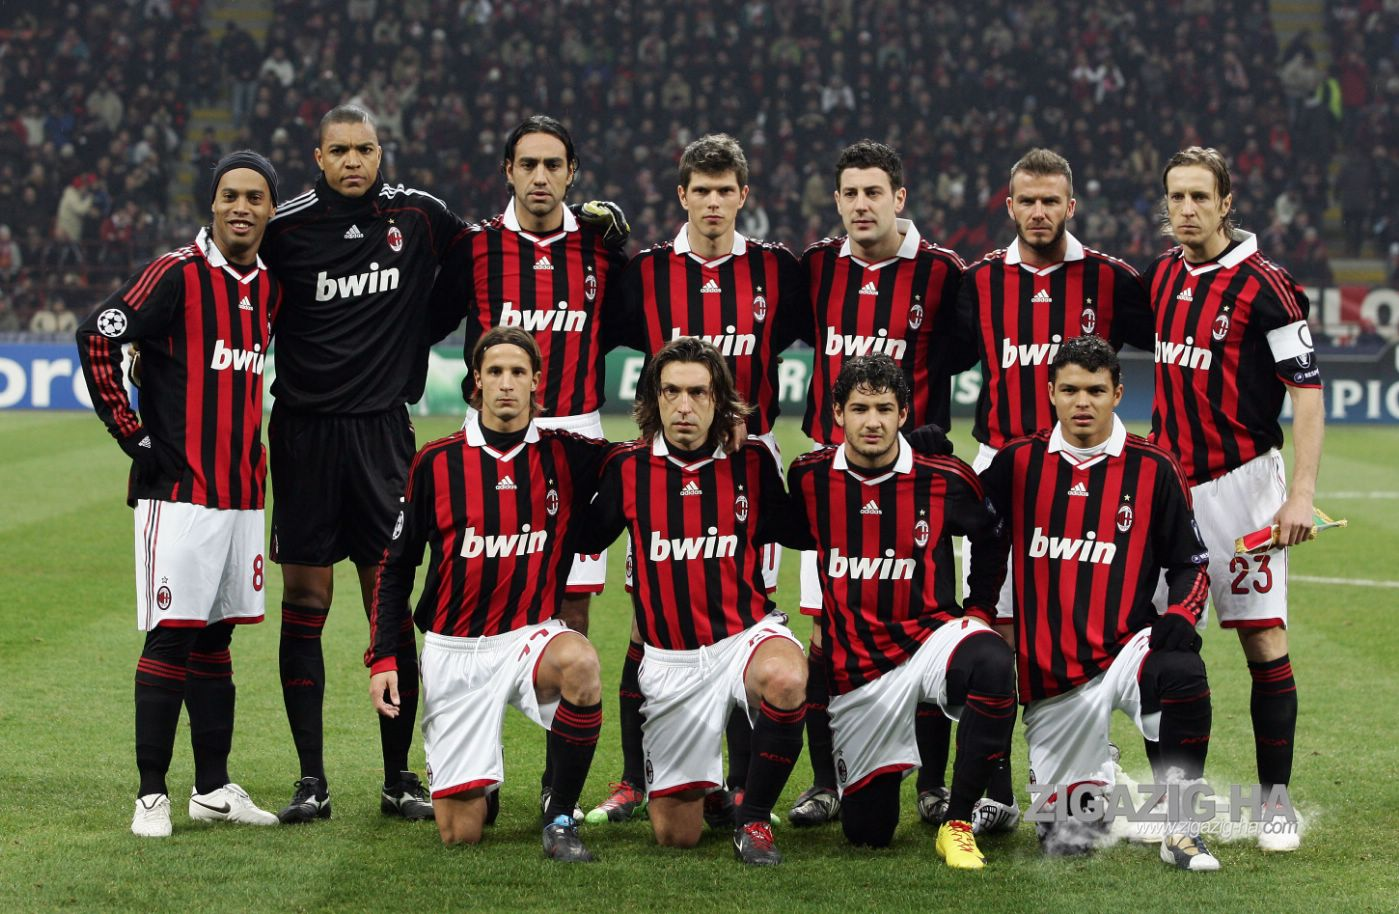 w ac milan - photo#13